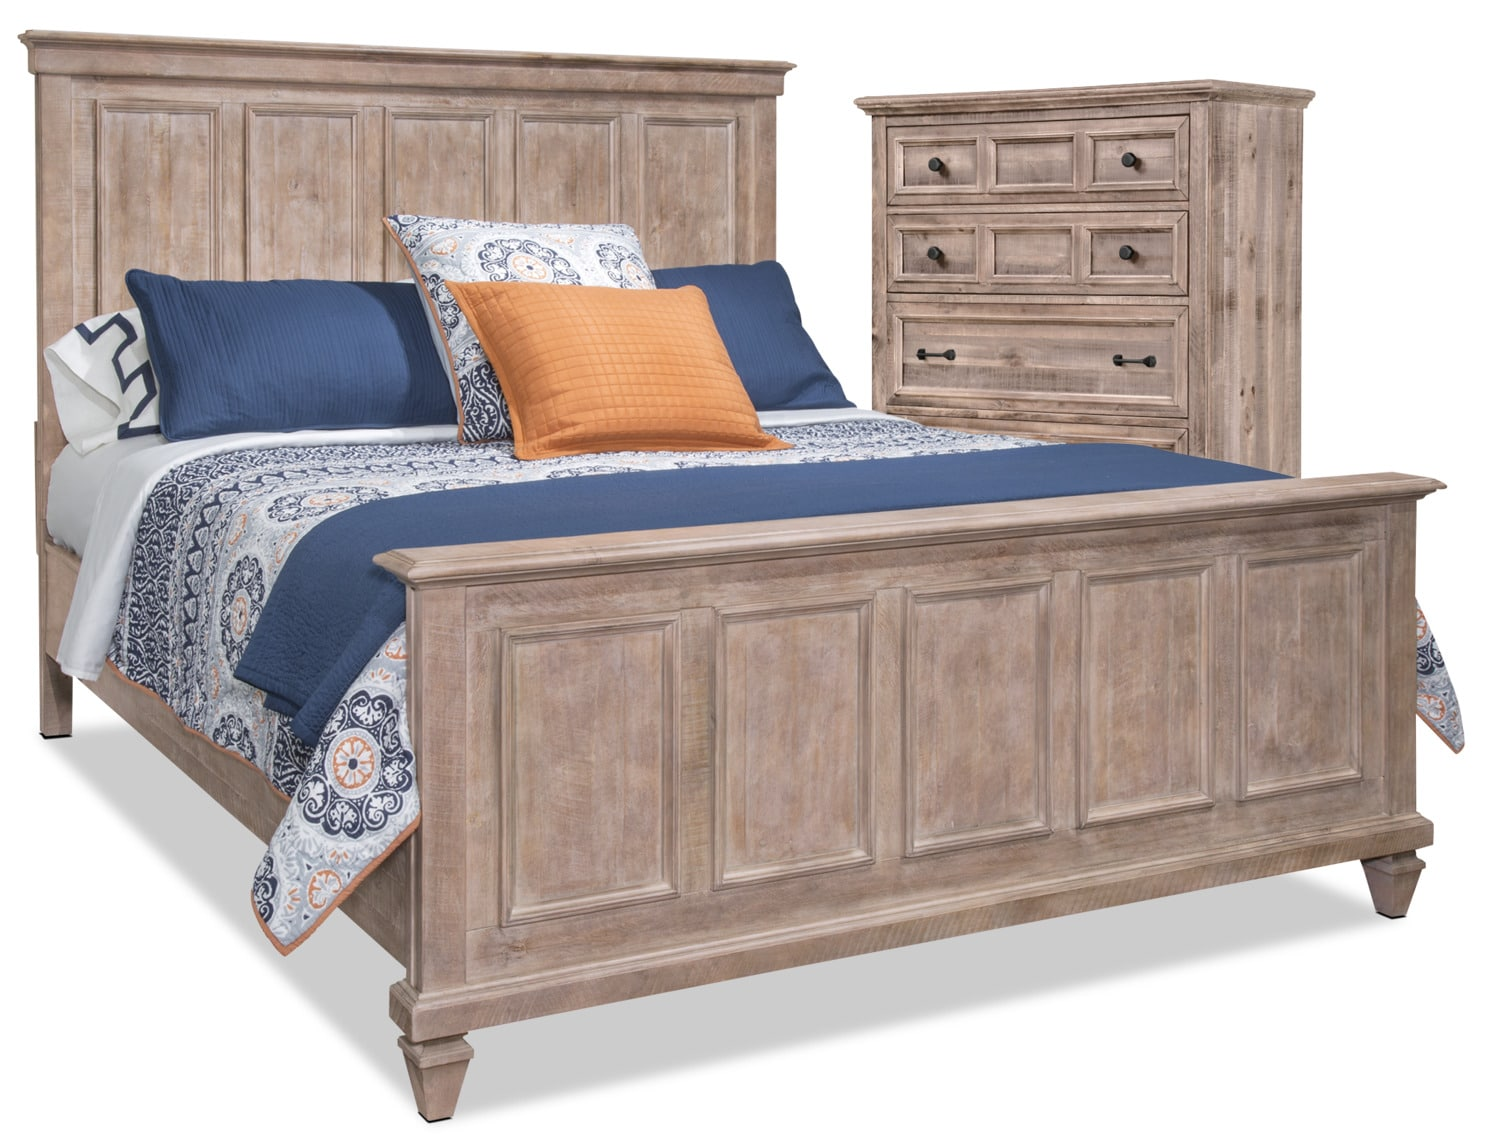 Calistoga 4 Piece Queen Bed And Chest Package Dovetail Grey The Brick